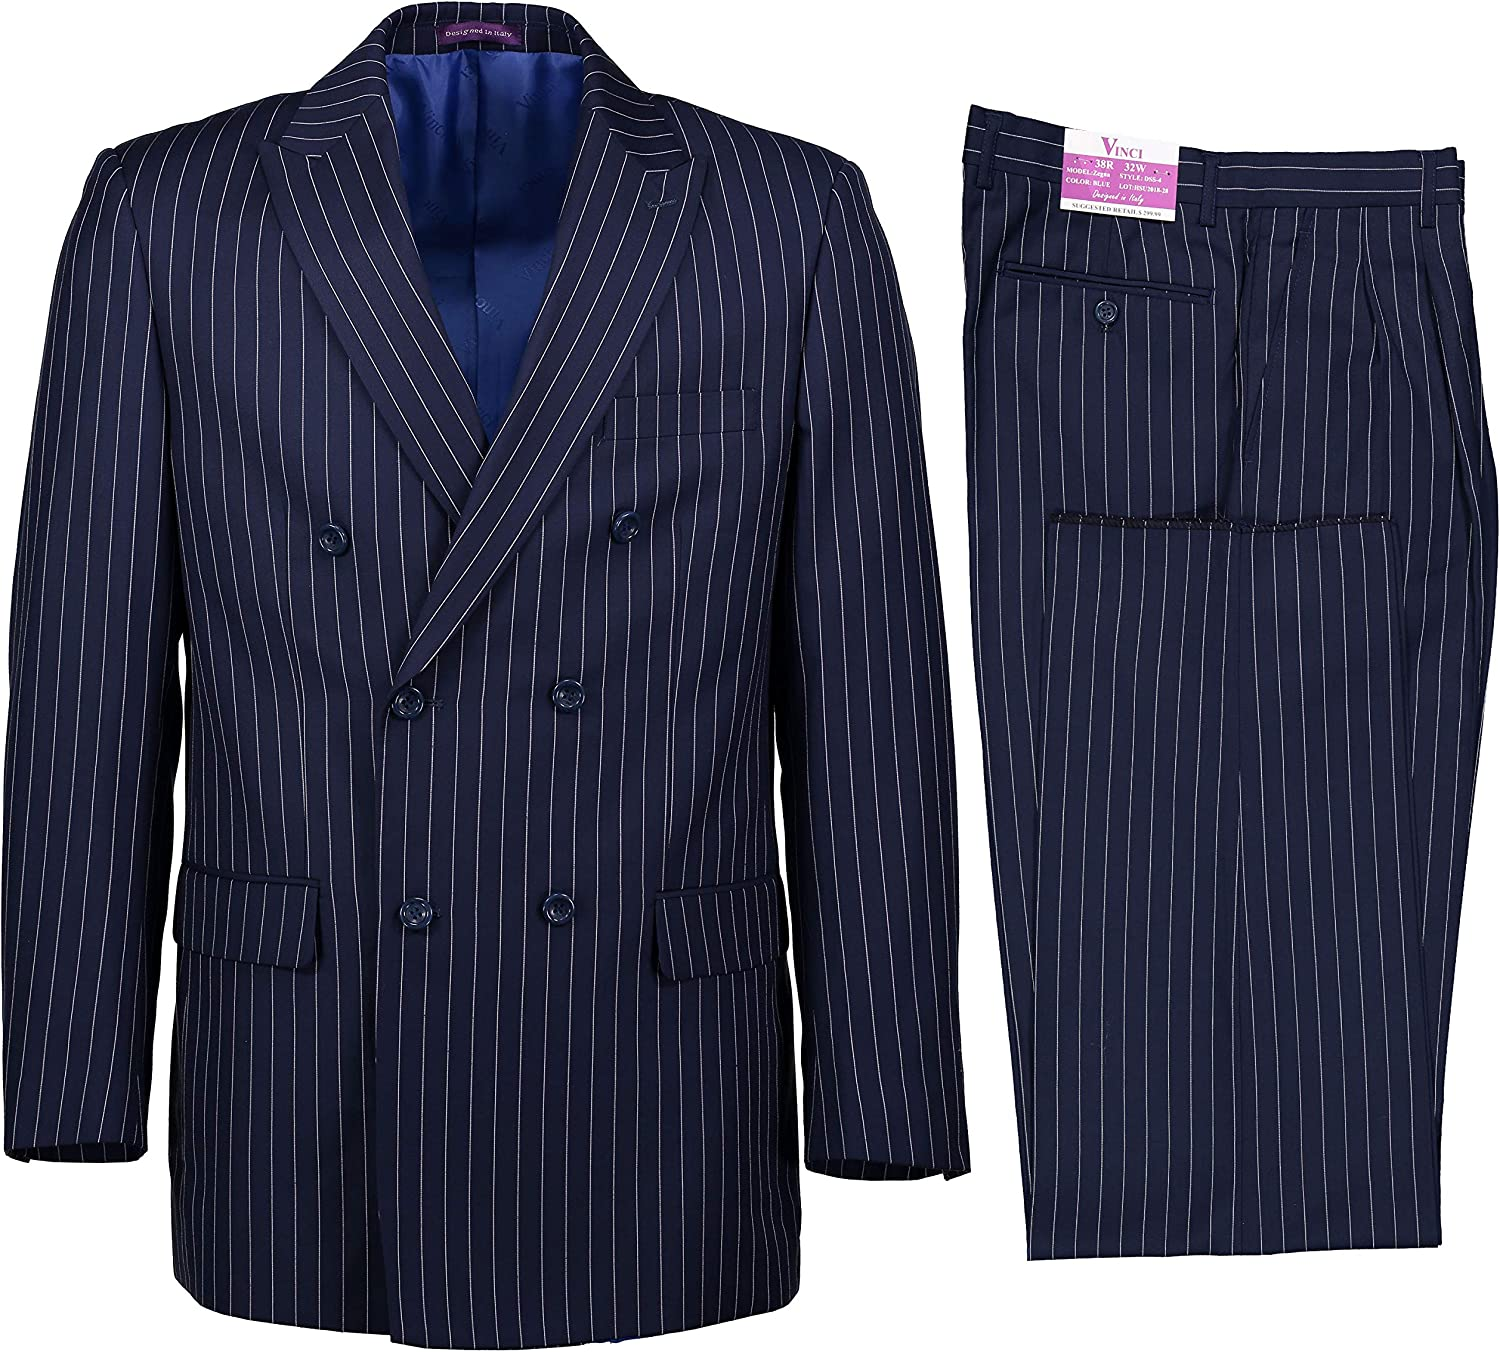 1940s Mens Suits | Gangster, Mobster, Zoot Suits VINCI Mens Gangster Pinstriped Double Breasted 6 Button Classic Fit Suit New $89.00 AT vintagedancer.com